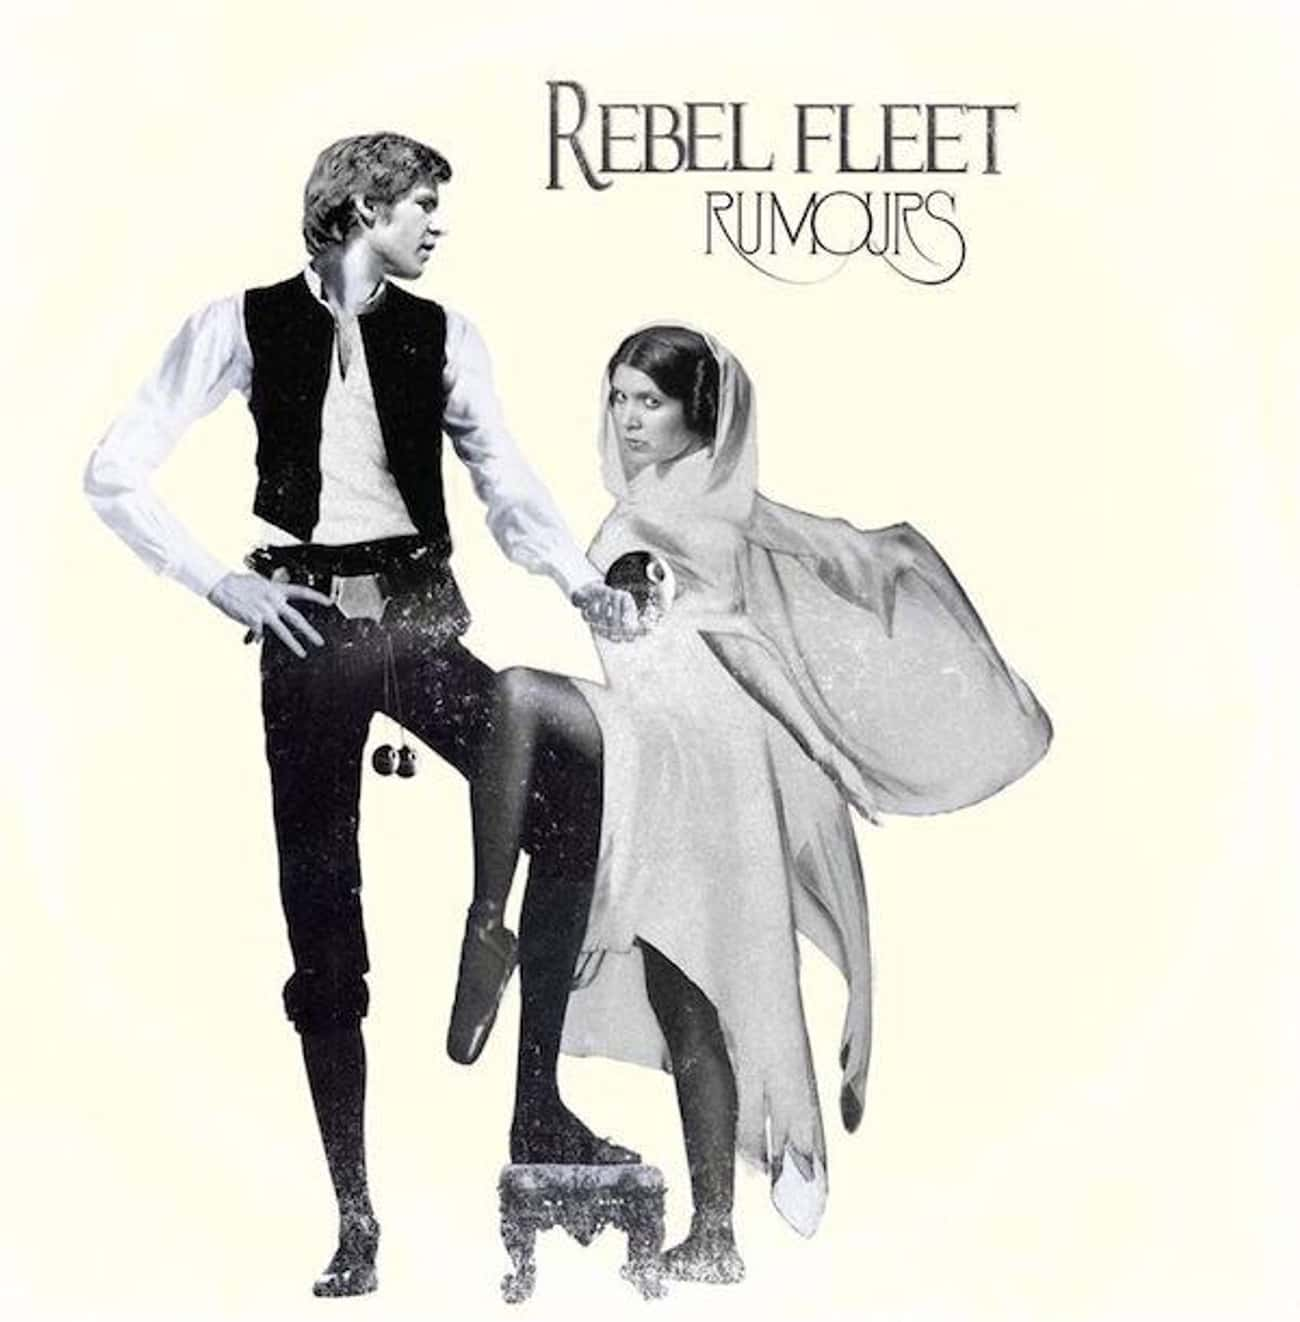 Fleetwood Mac - Rumours is listed (or ranked) 3 on the list Iconic Album Covers Reimagined with Star Wars Characters